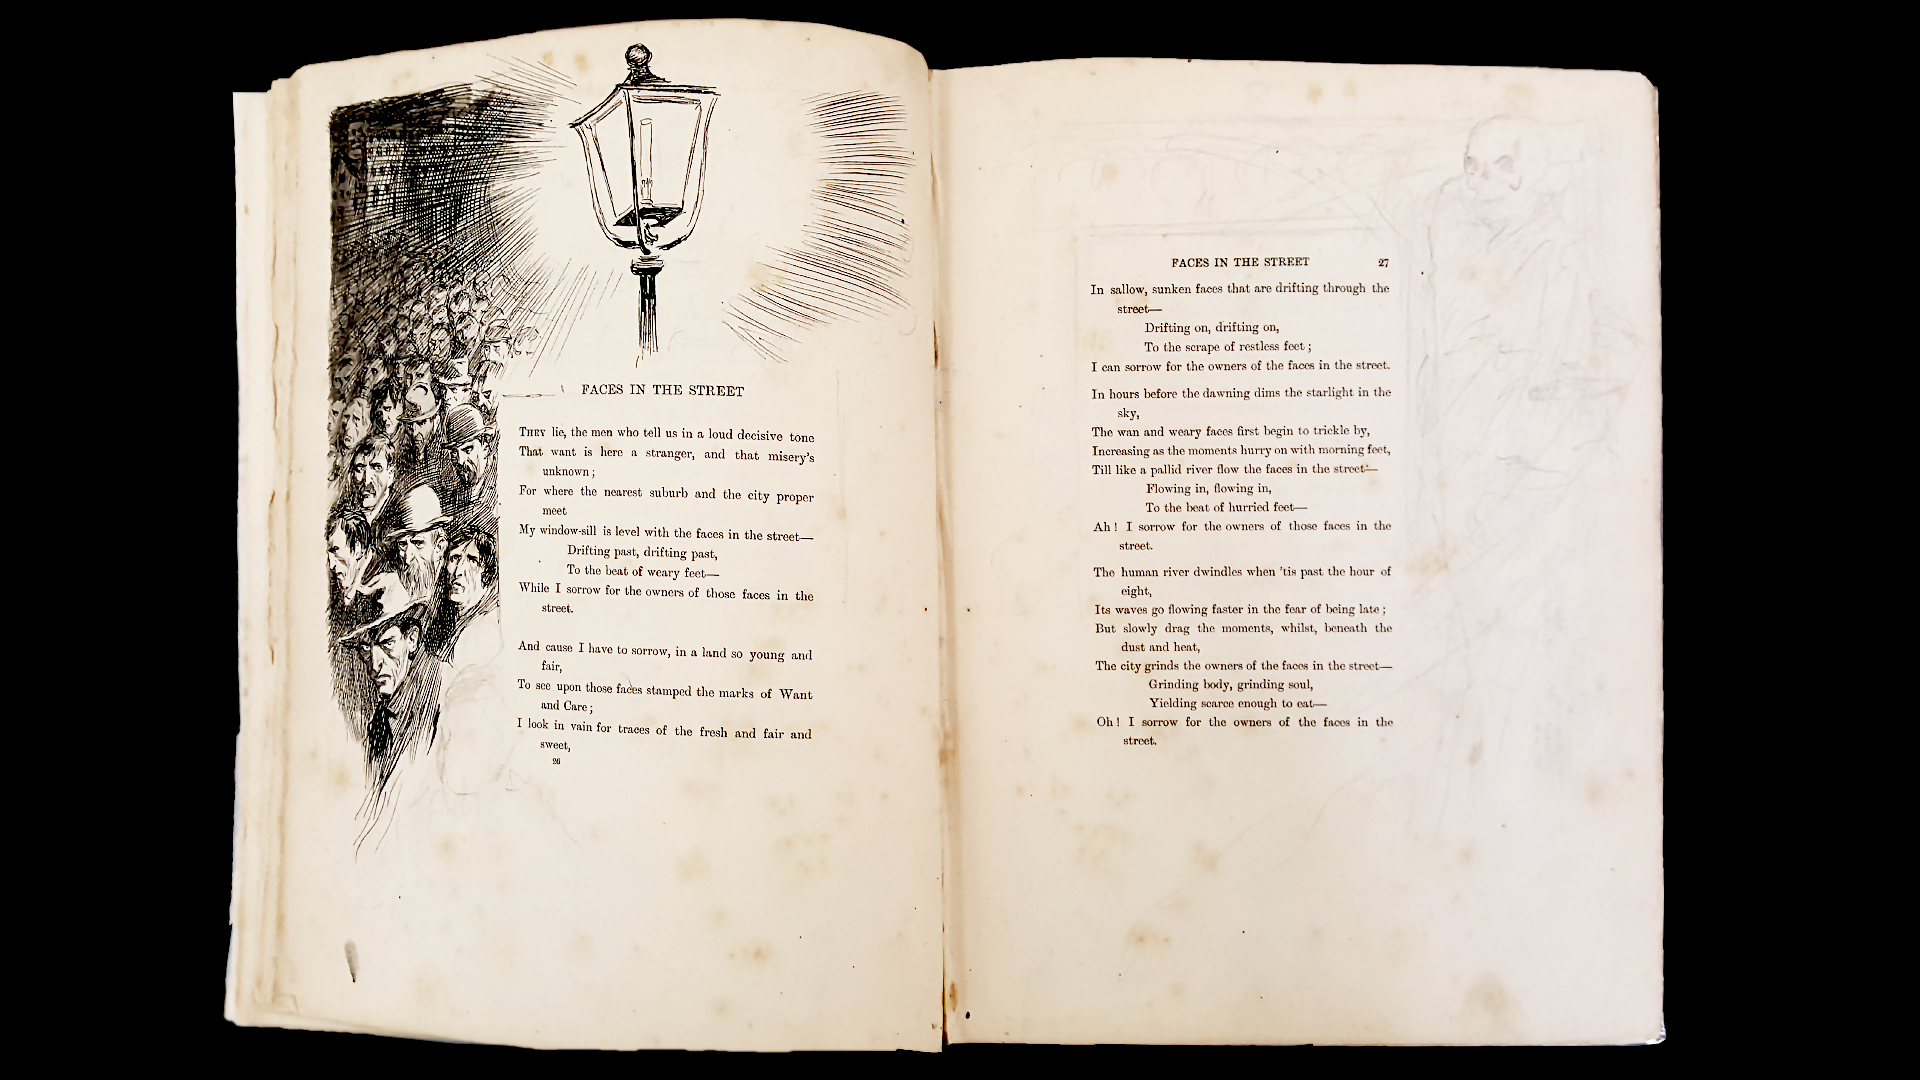 Picture of an open poetry book with hand sketches.